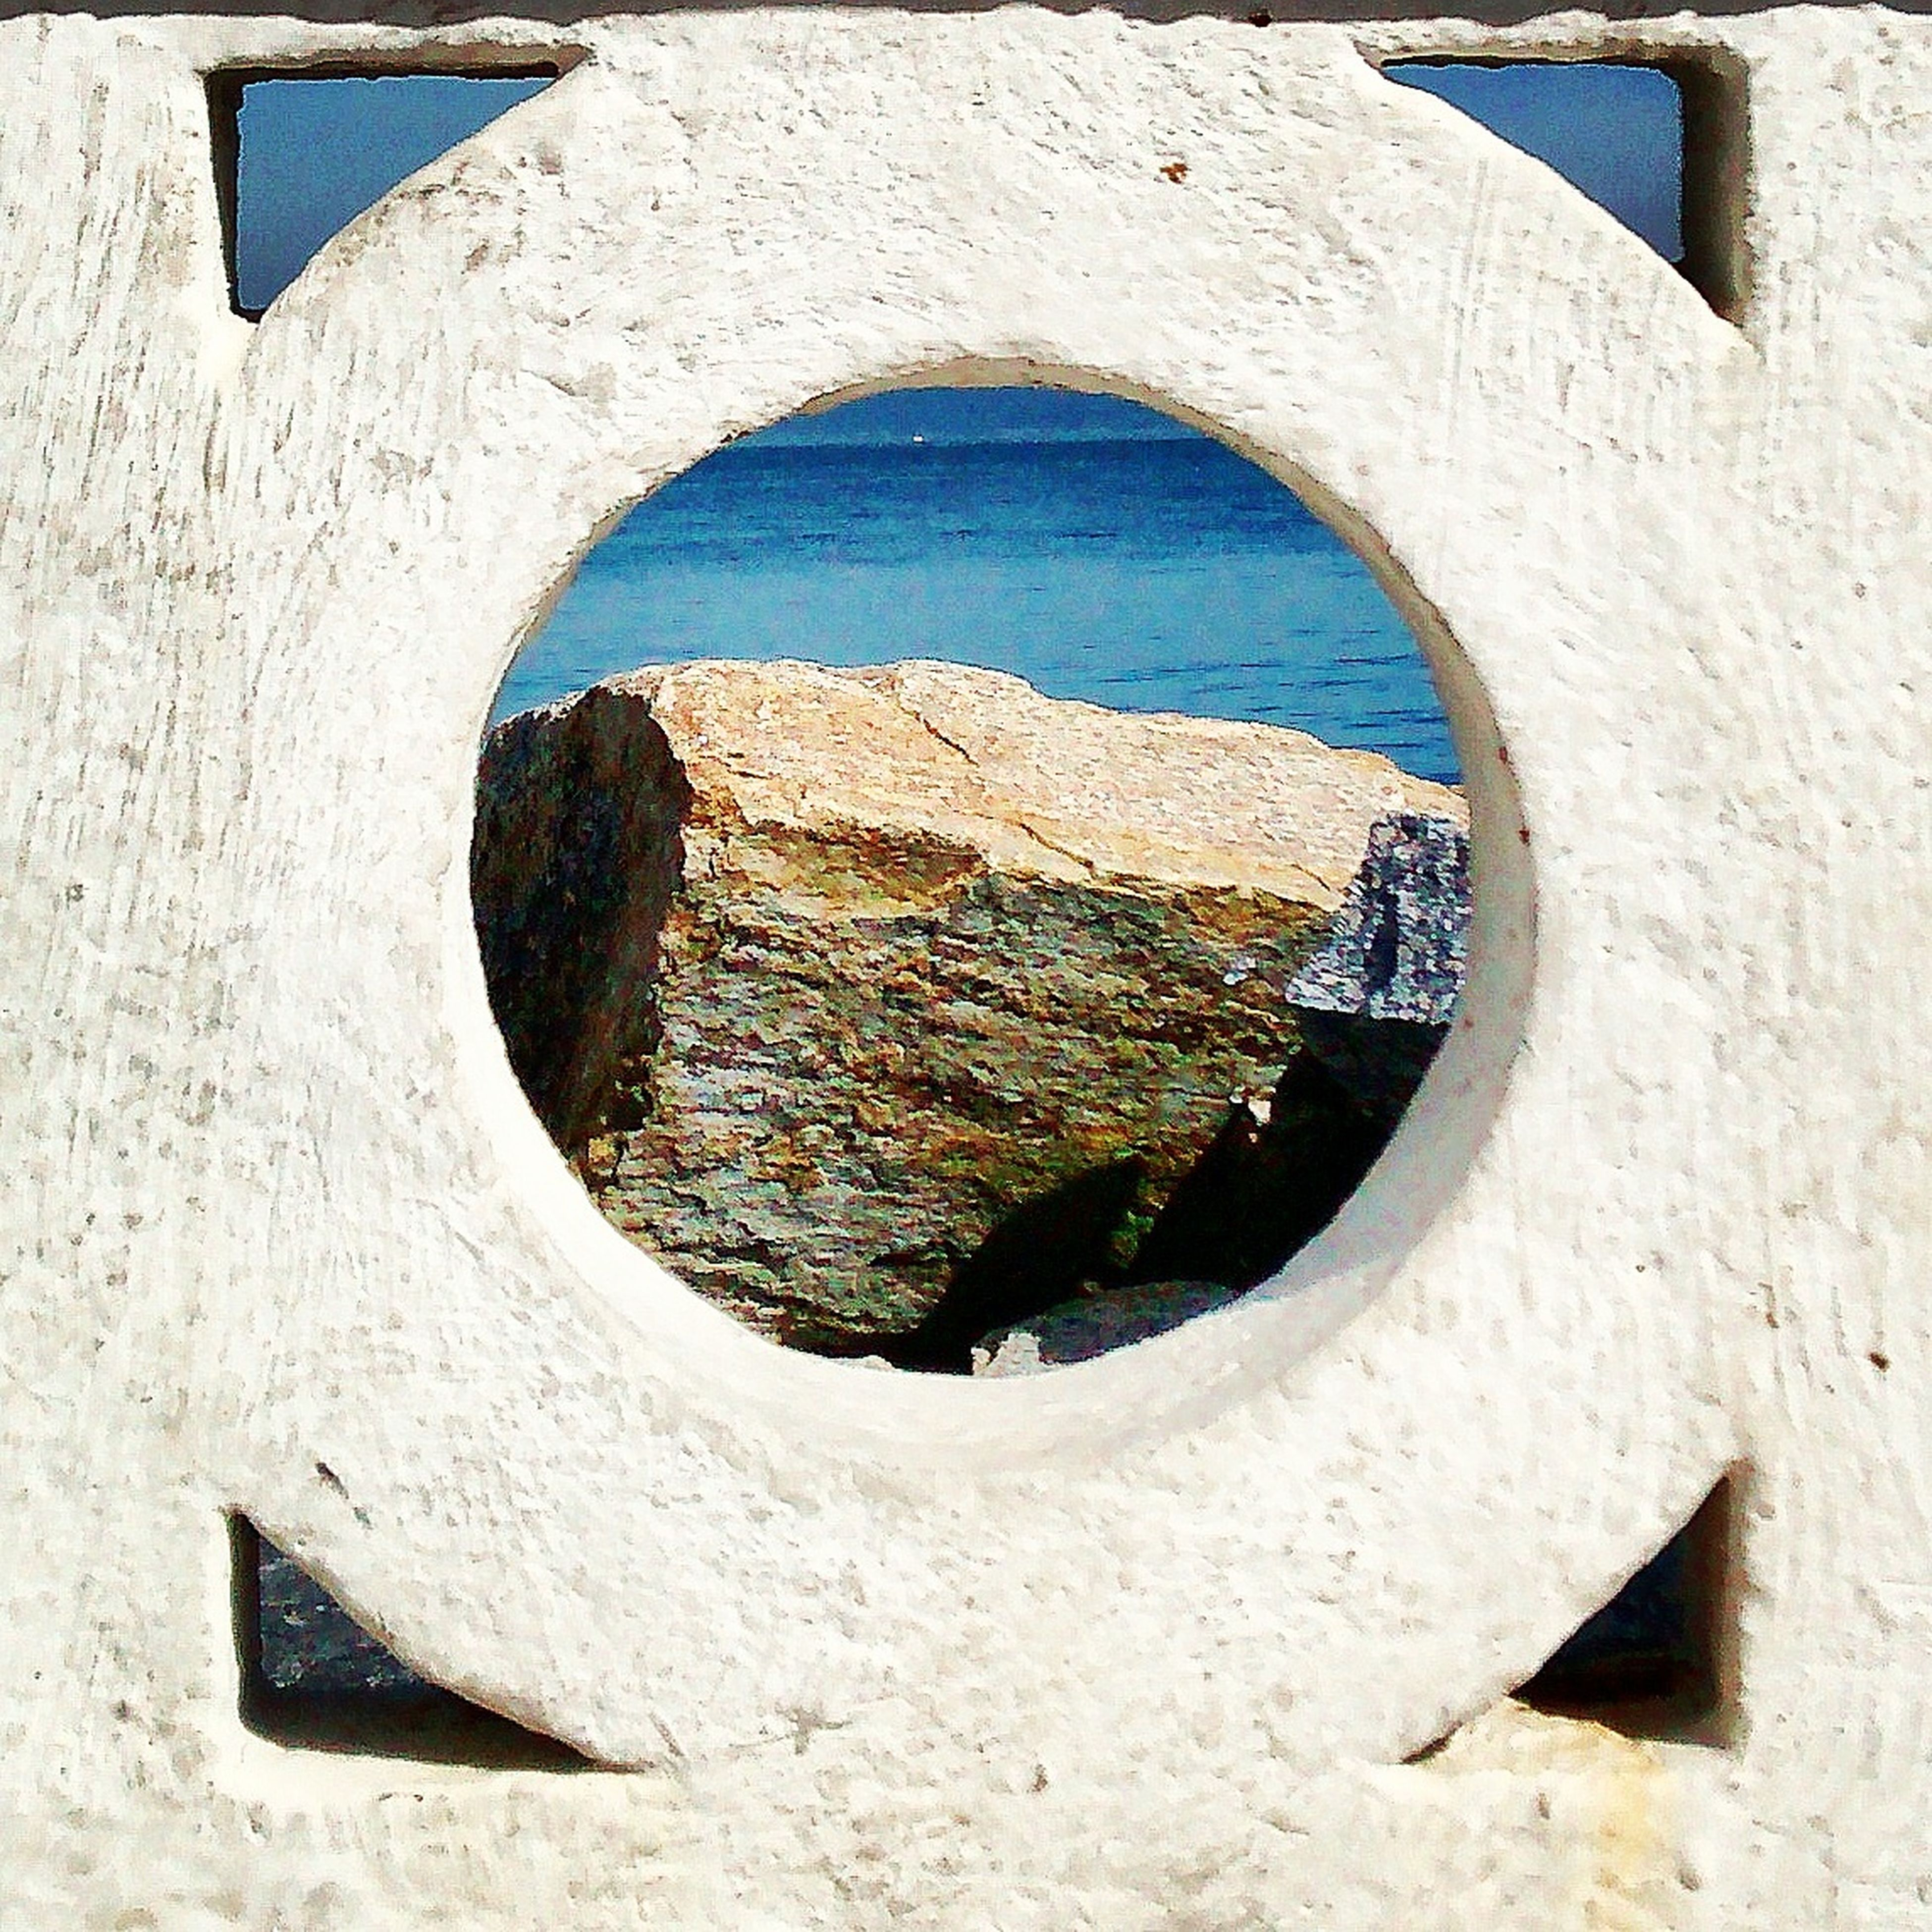 circle, architecture, built structure, geometric shape, building exterior, textured, shape, old, day, wall - building feature, blue, close-up, weathered, hole, no people, outdoors, damaged, wall, pattern, stone wall